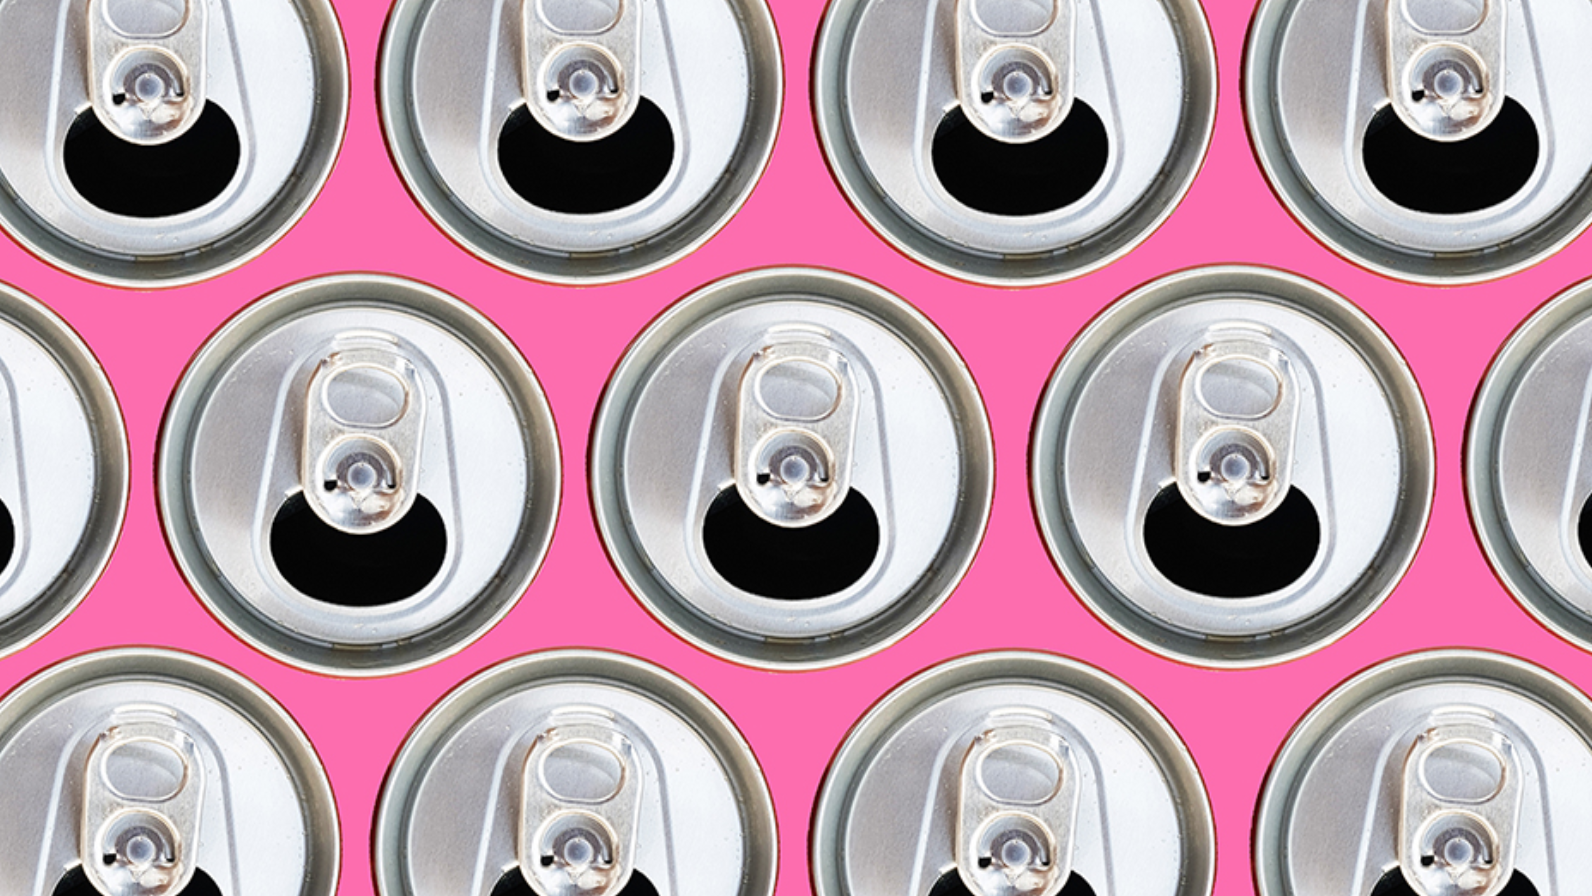 Why Your LaCroix Obsession Isn't So Healthy